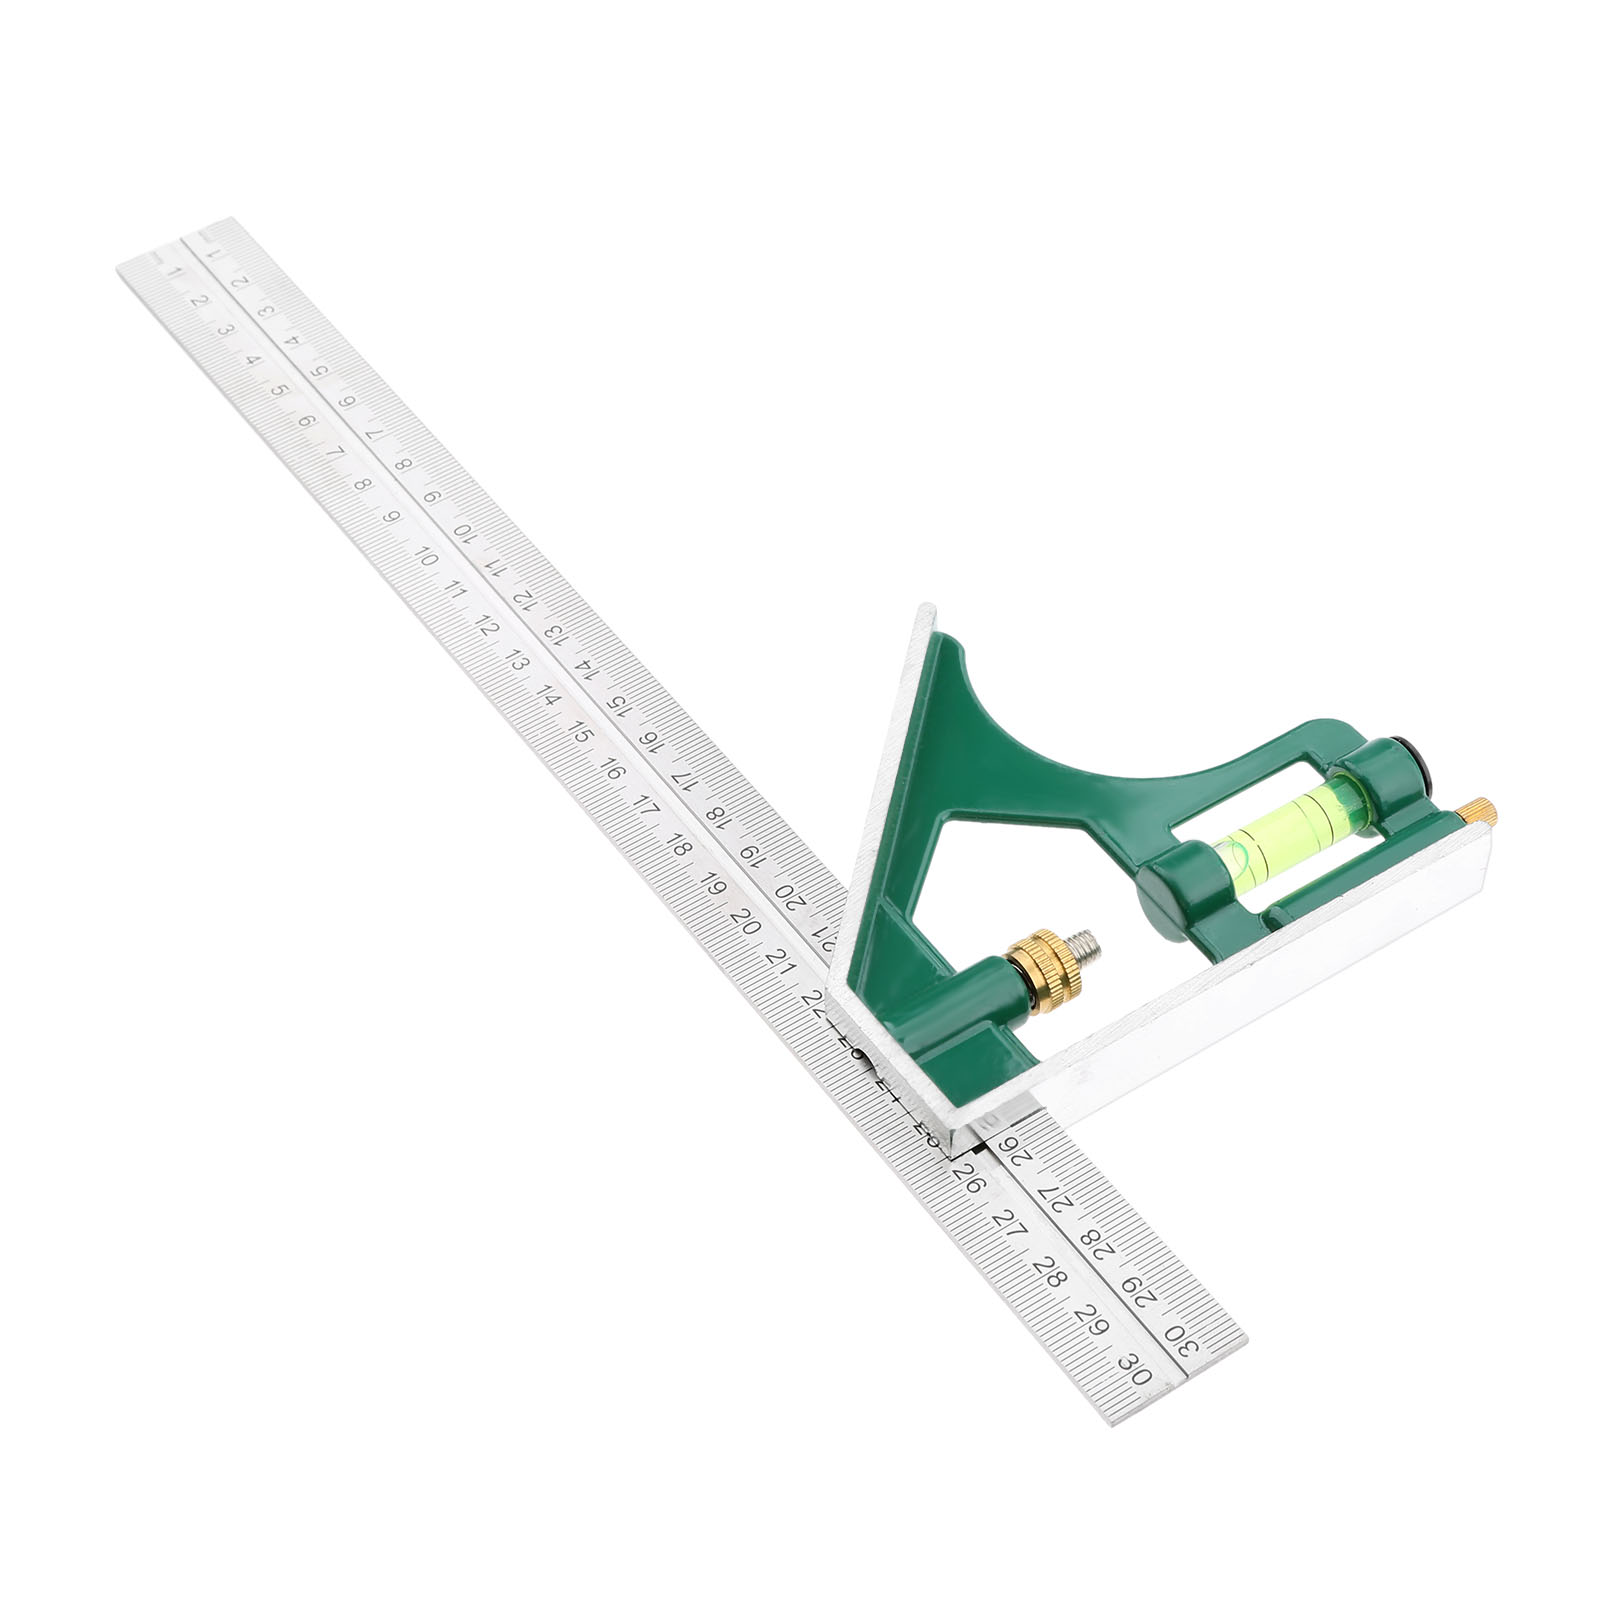 300mm Stainless Steel Combination Square Angle Ruler Multi-function Angle Ruler